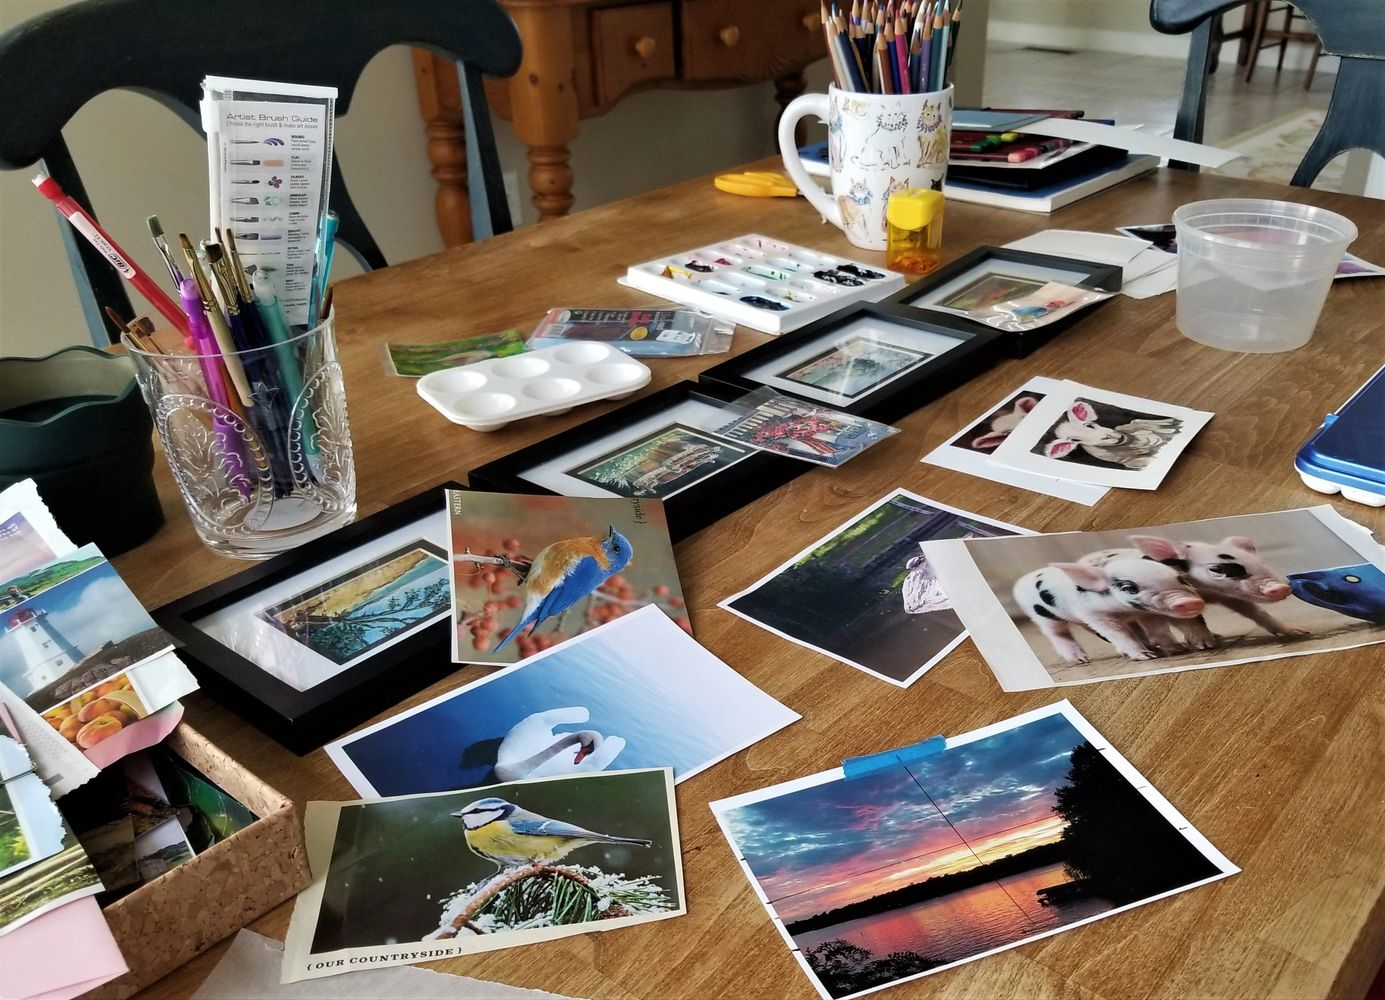 A kitchen table filled with inspiration photographs, painted pictures, pencils, brushes and paint